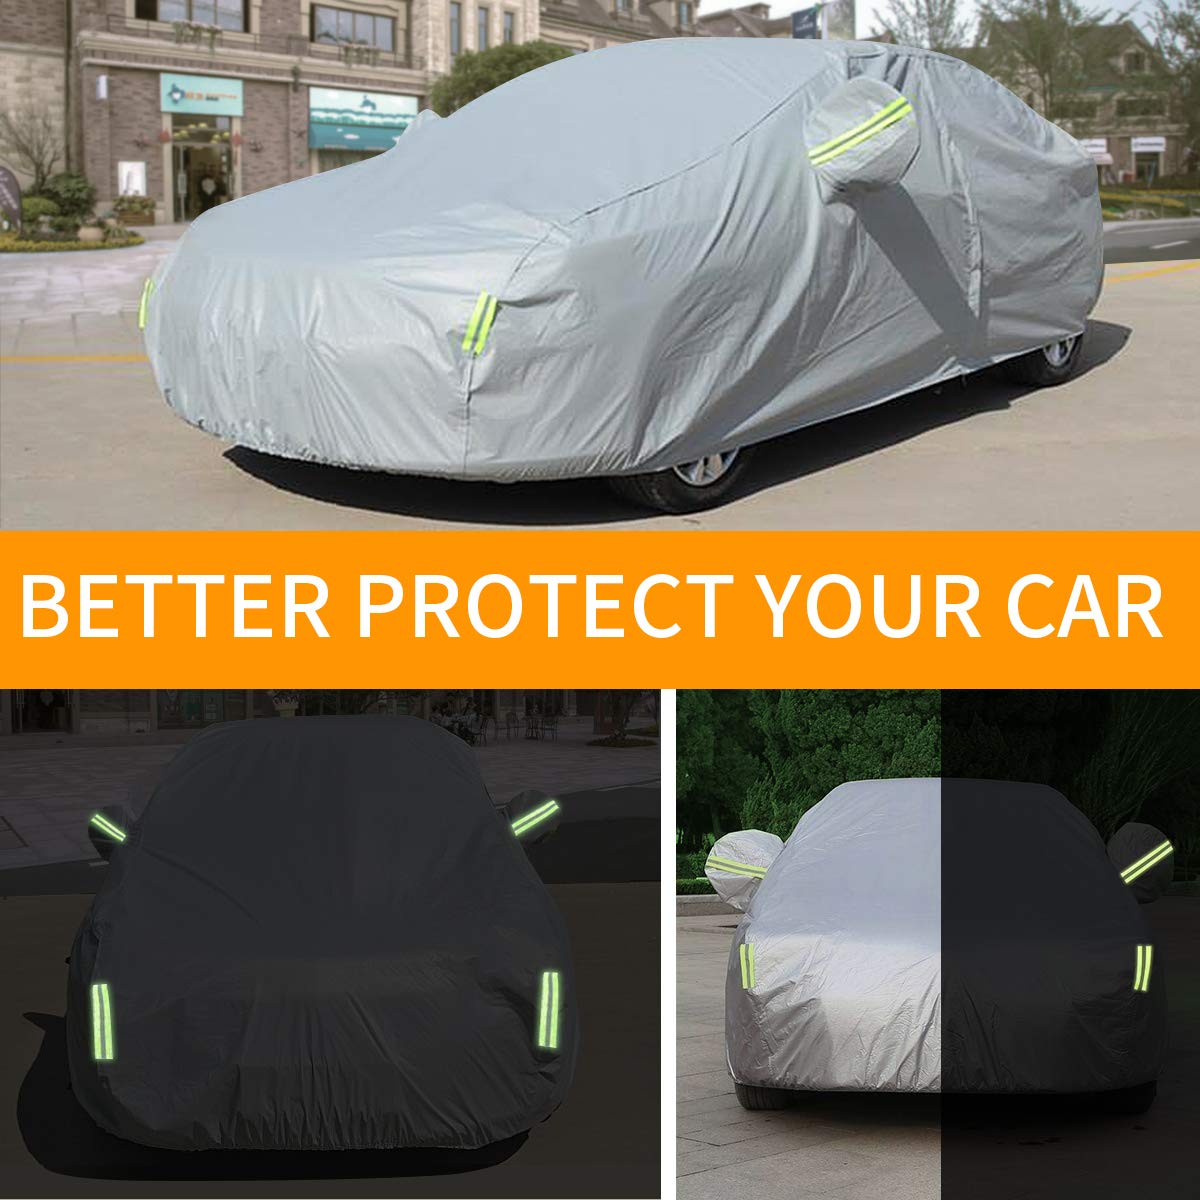 YIBEICO Sedan Car Cover Snow Cover All Weather Waterproof Protection From Snow Rain Dust Sun UV with Cotton Zipper for Automobiles Indoor Outdoor Fit Sedan(485*190*147 cm)